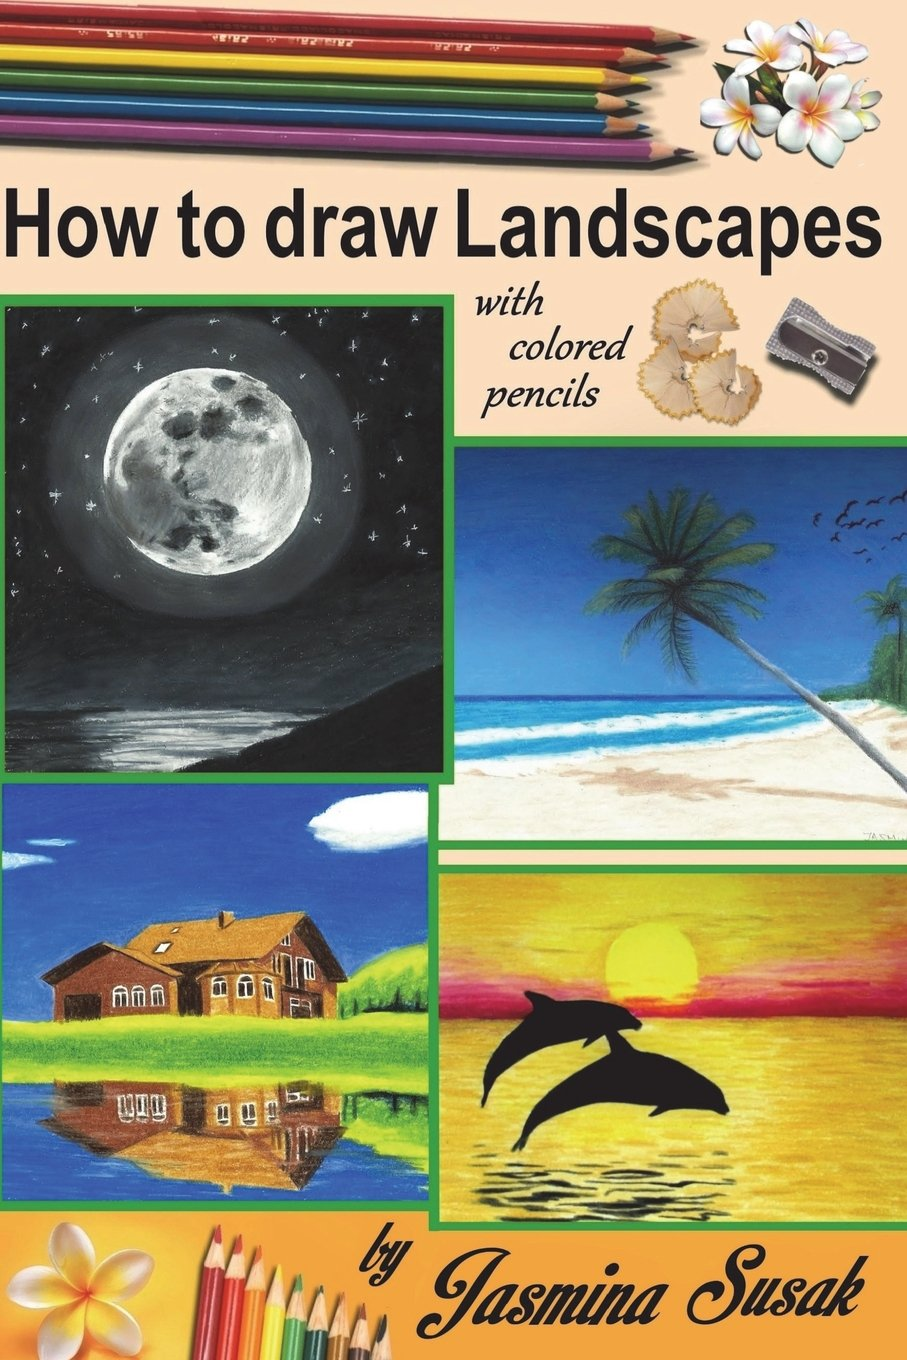 Download How to draw Landscapes: with Colored Pencils in realistic style for beginner to intermediate artist, step-by-step tutorrials, How to Draw Nature, Learn to Draw lifelike Landscape, Sunset, Sea, Trees pdf